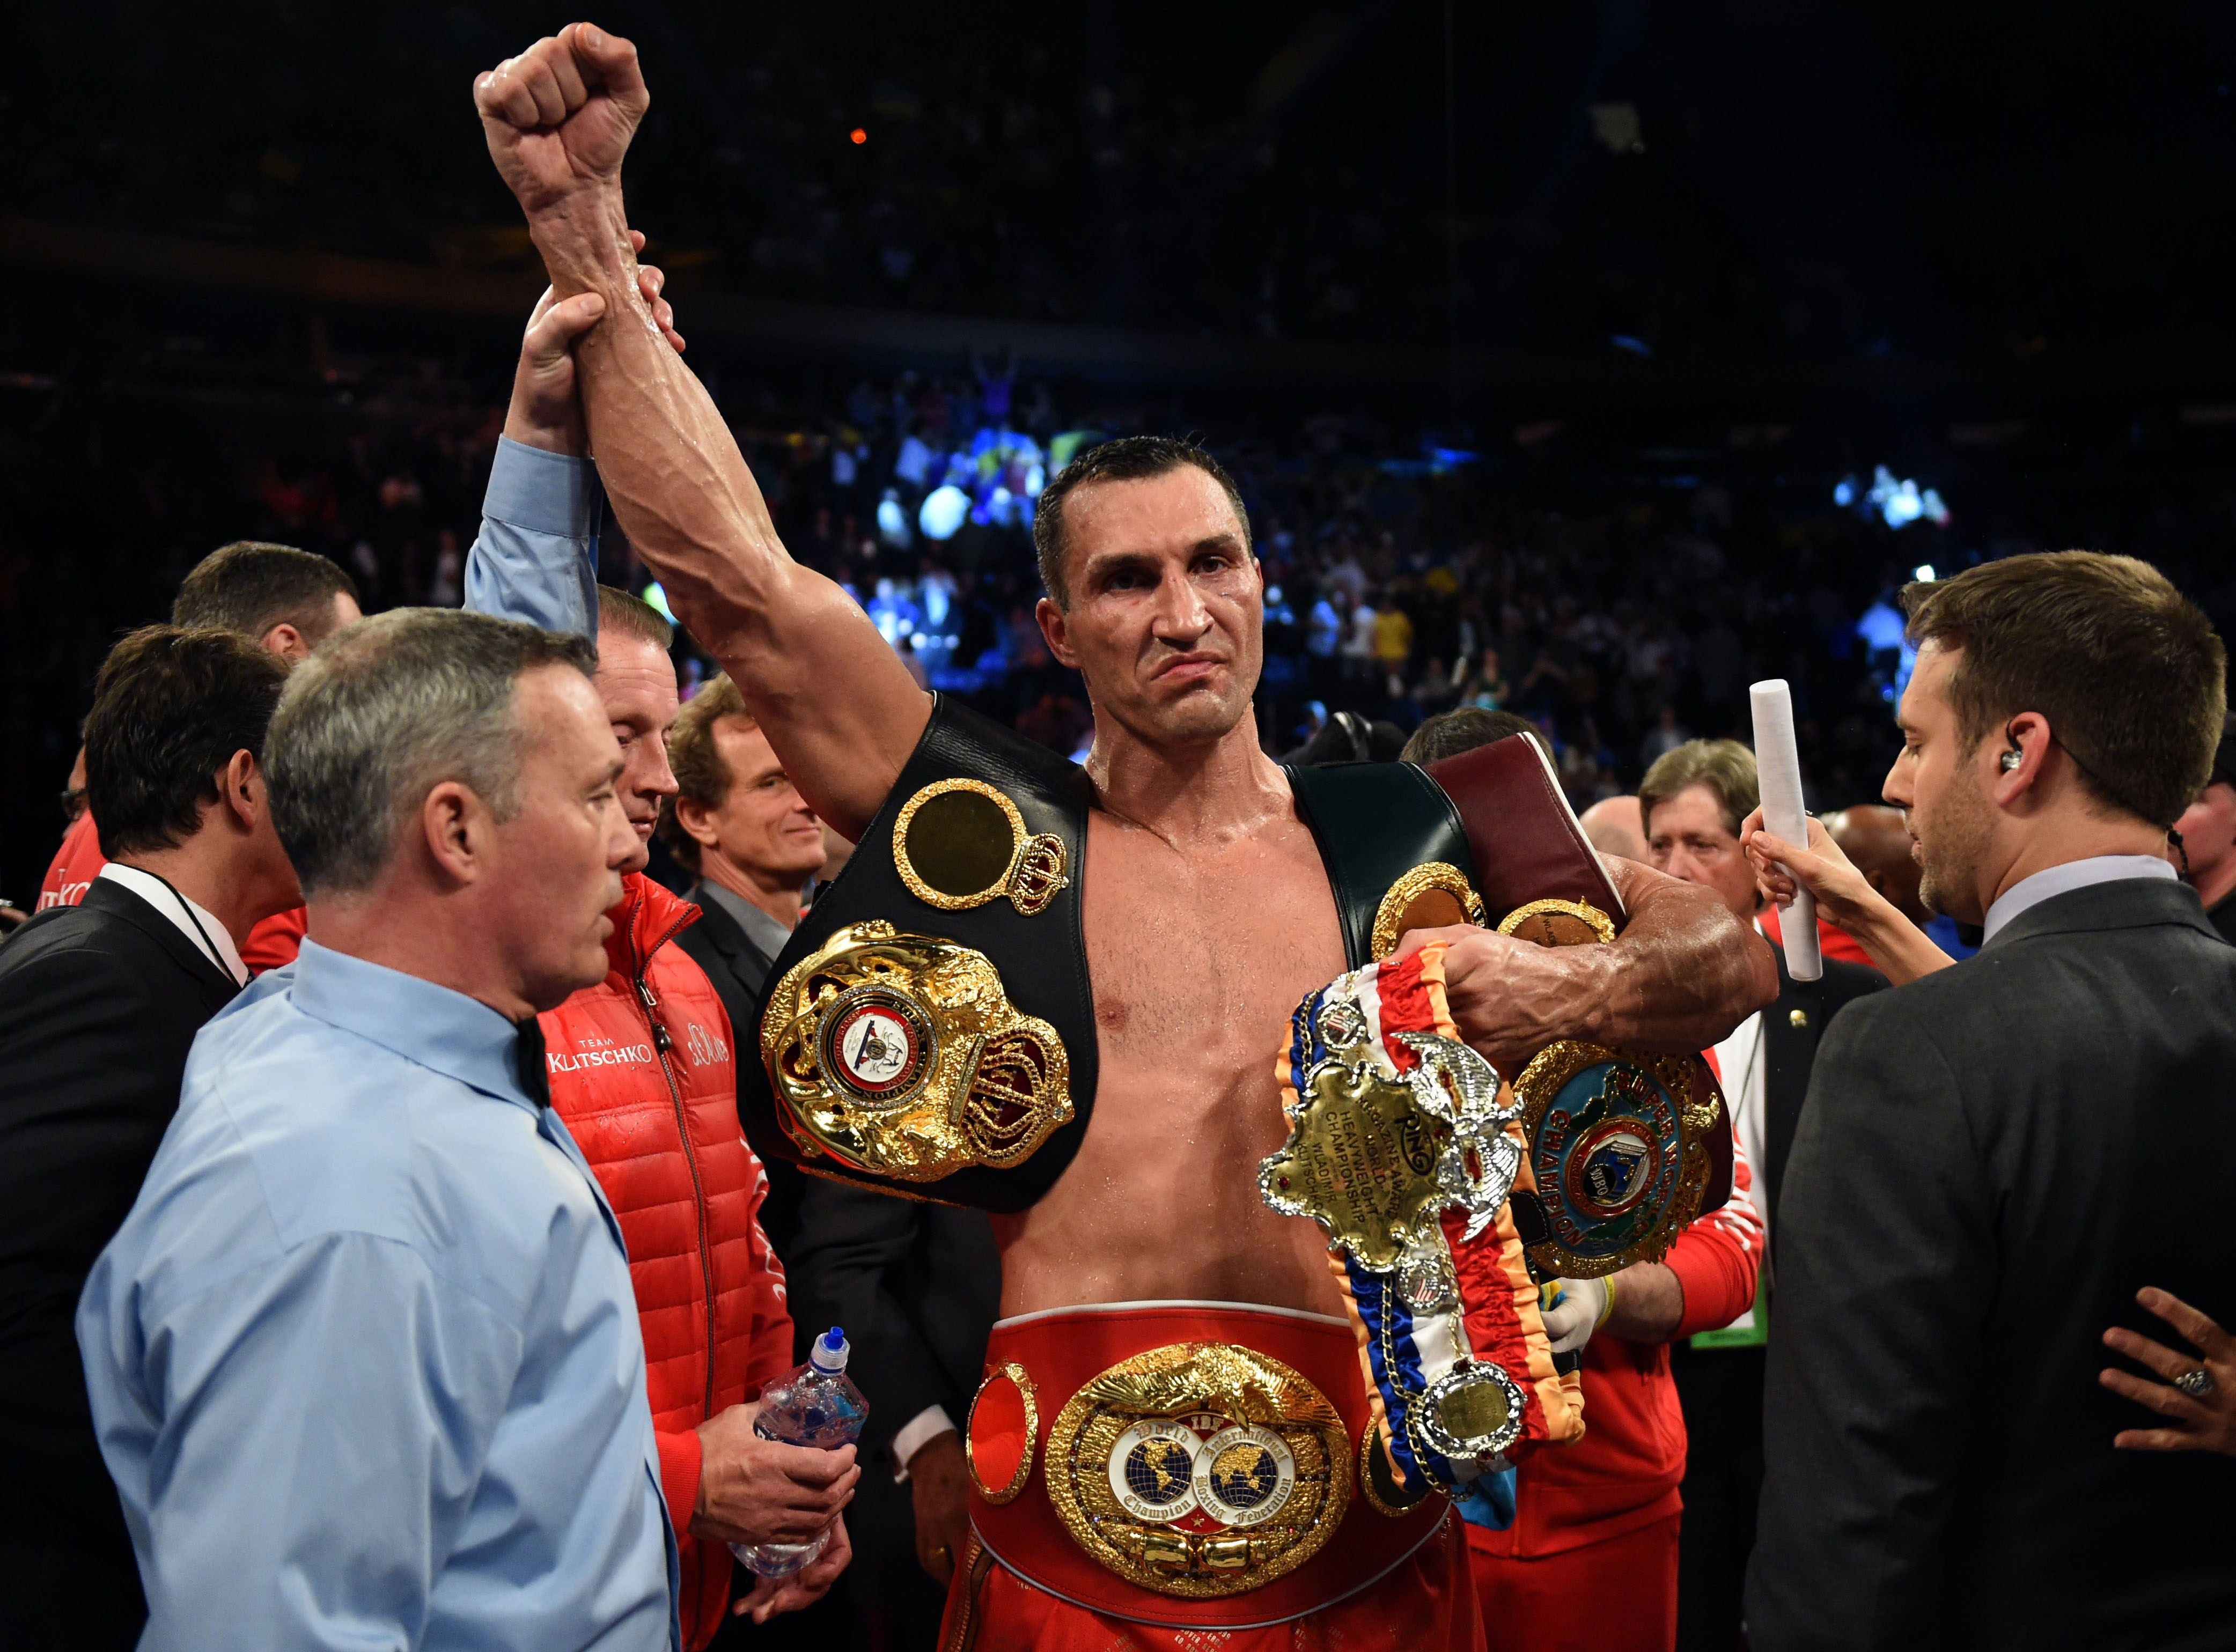 What time is the Wladimir Klitschko vs. Tyson Fury fight, What time is the Wladimir Klitschko fight, What time is Tyson Fury fight, What channel is the Wladimir Klitschko vs. Tyson Fury fight, What channel is the Wladimir Klitschko fight, What channel is Tyson Fury fight,